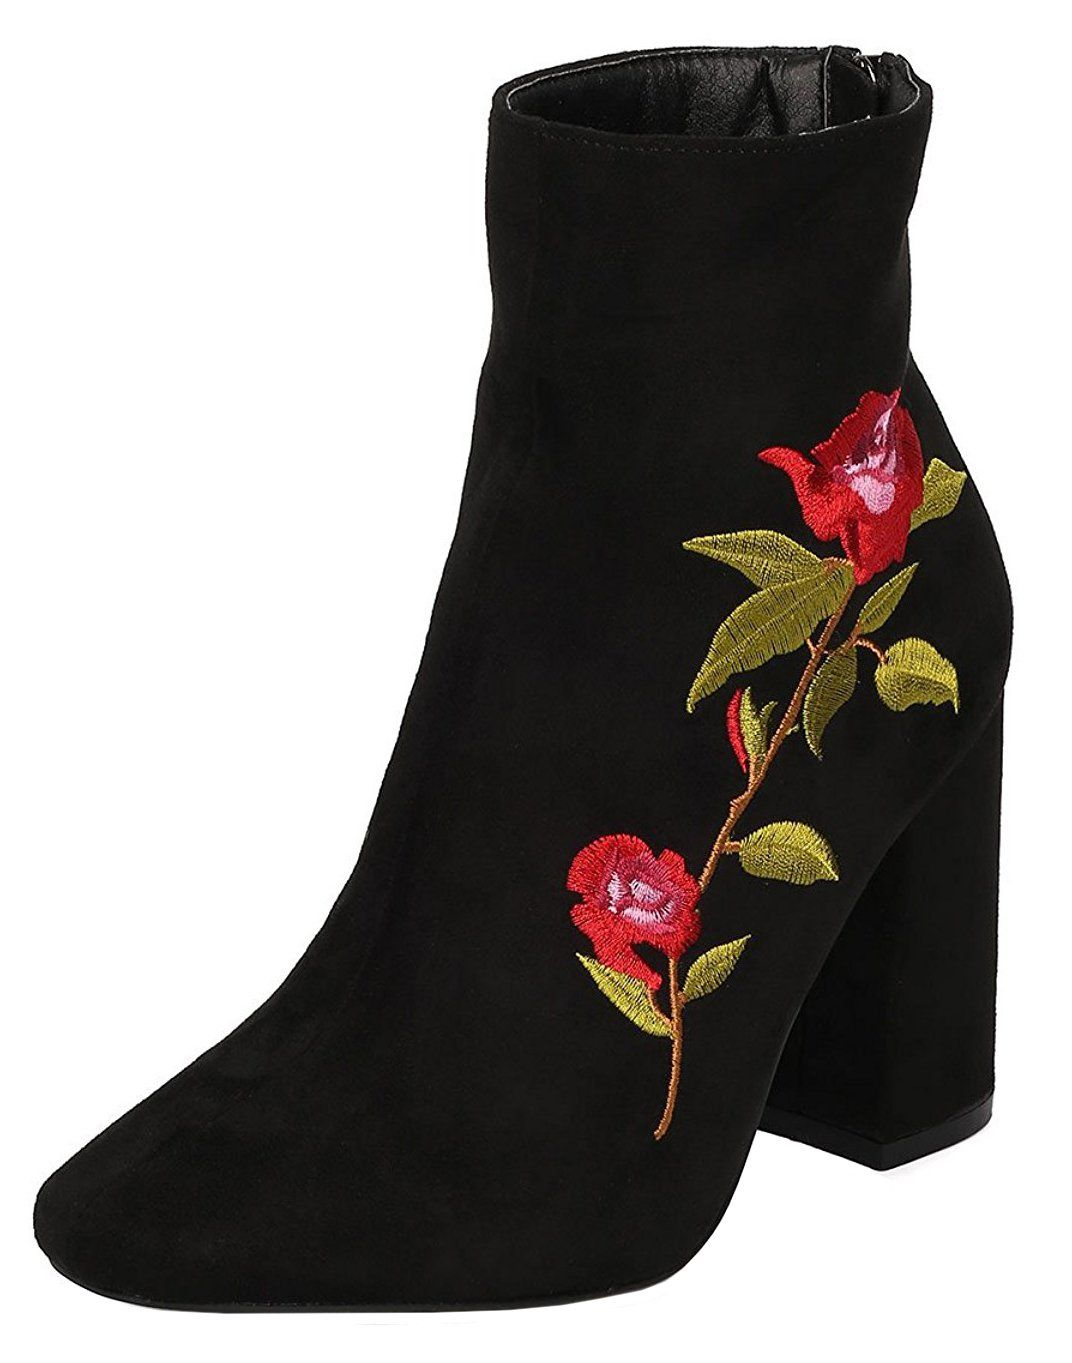 Women's Closed Toe Embroidered Chunky Stacked Heel Ankle Bootie